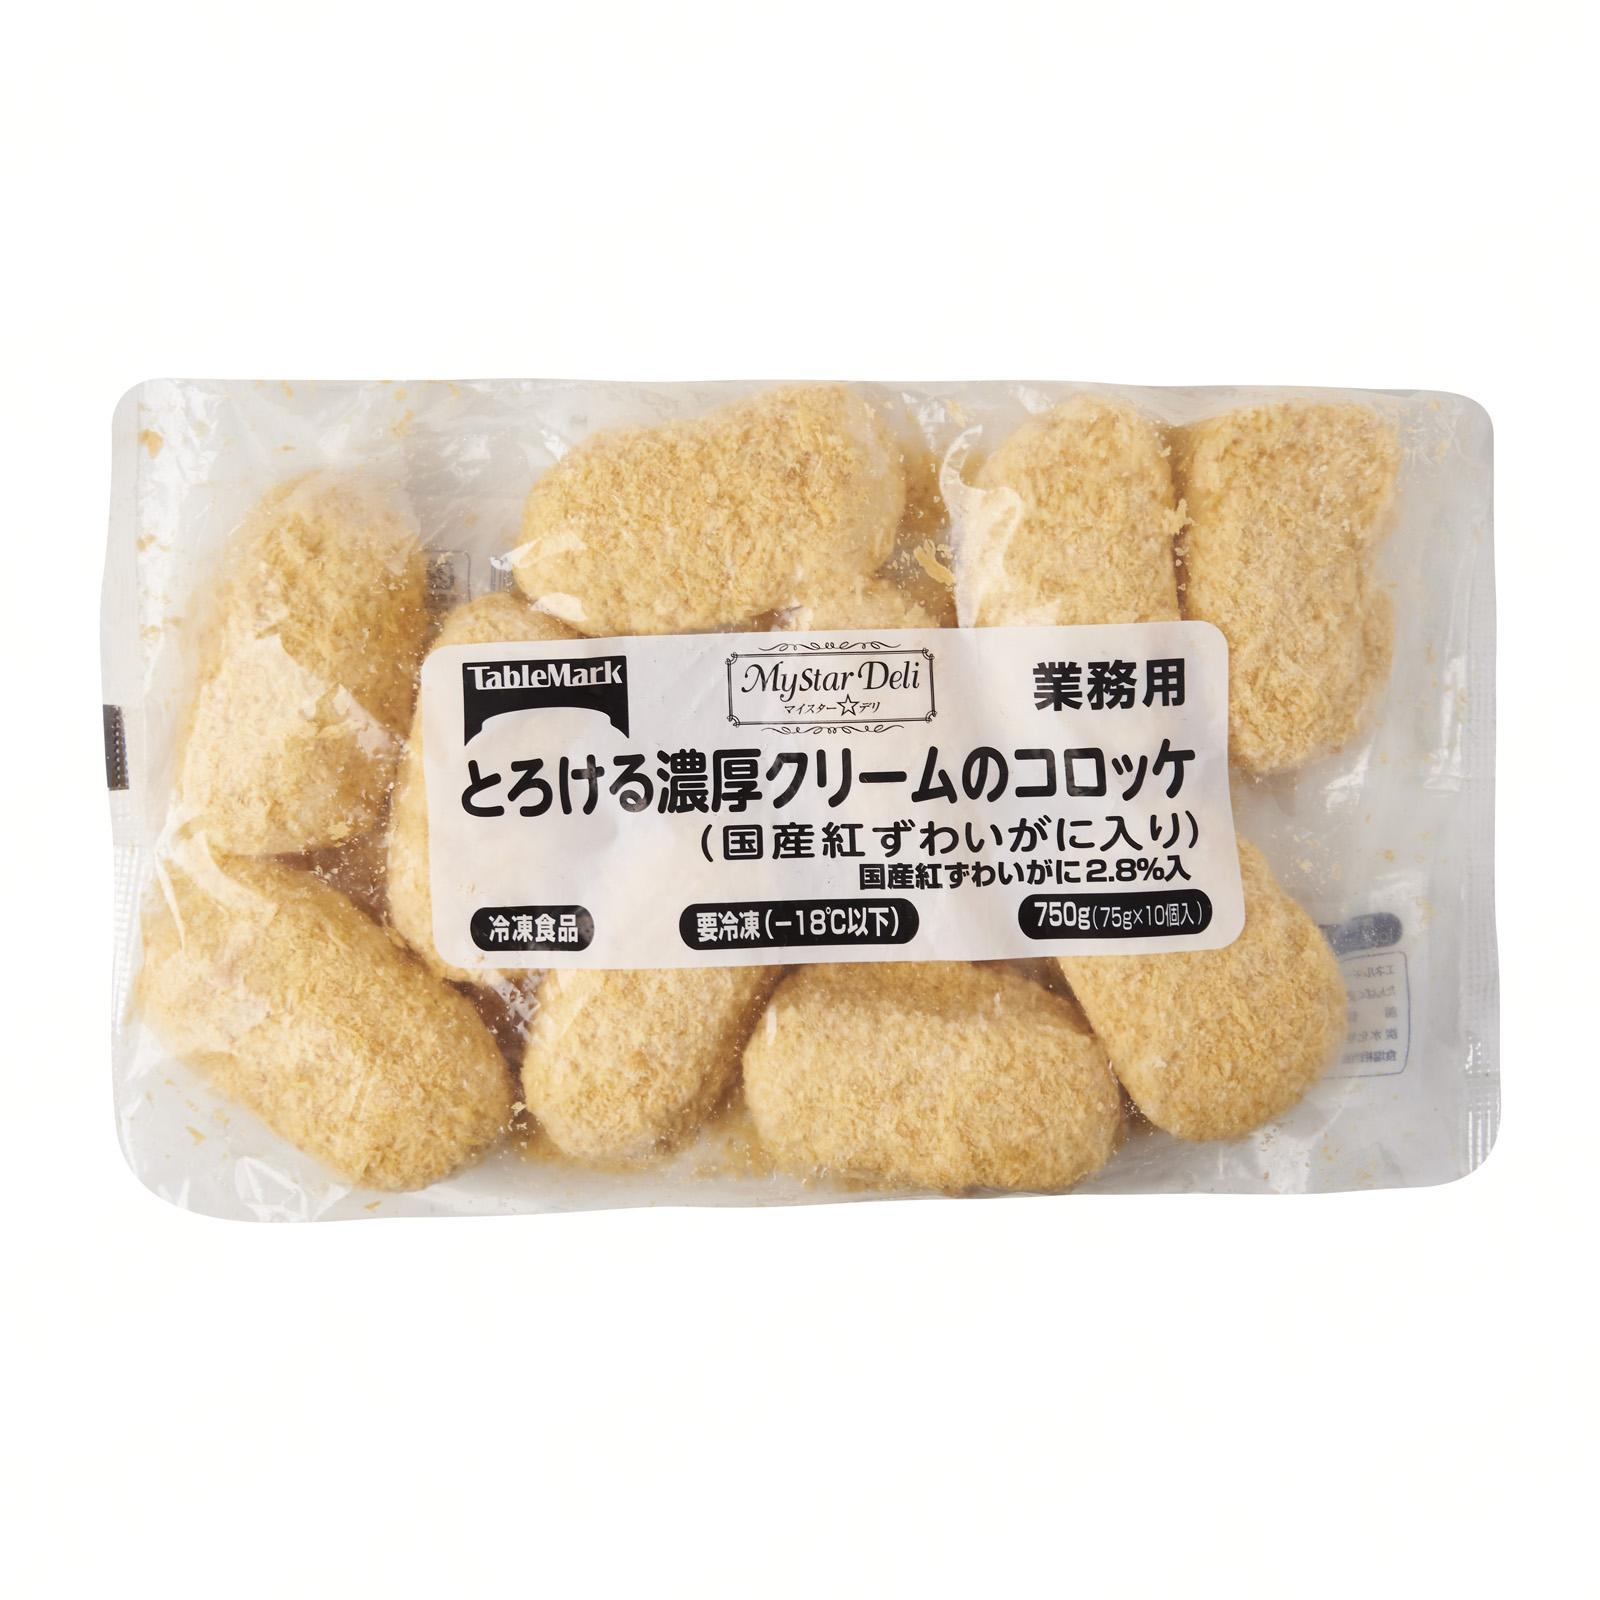 Tablemark Kani Crab Cream Croquette - Frozen - Jetro Special By Redmart